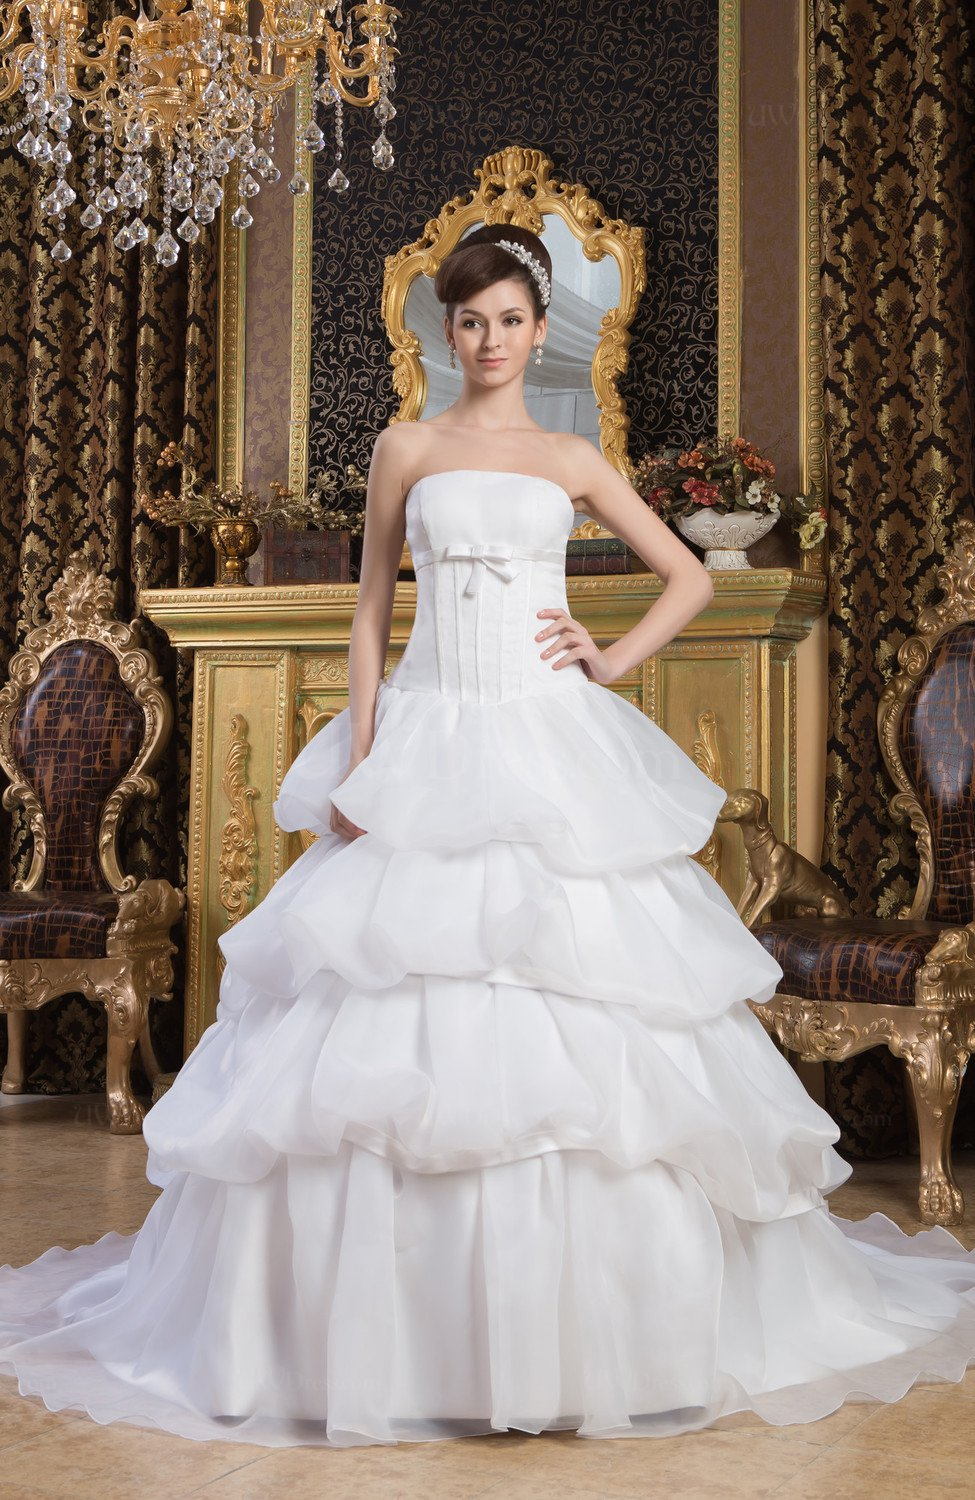 White Allure Bridal Gowns Ball Gown Luxury Full Figure Glamorous ...